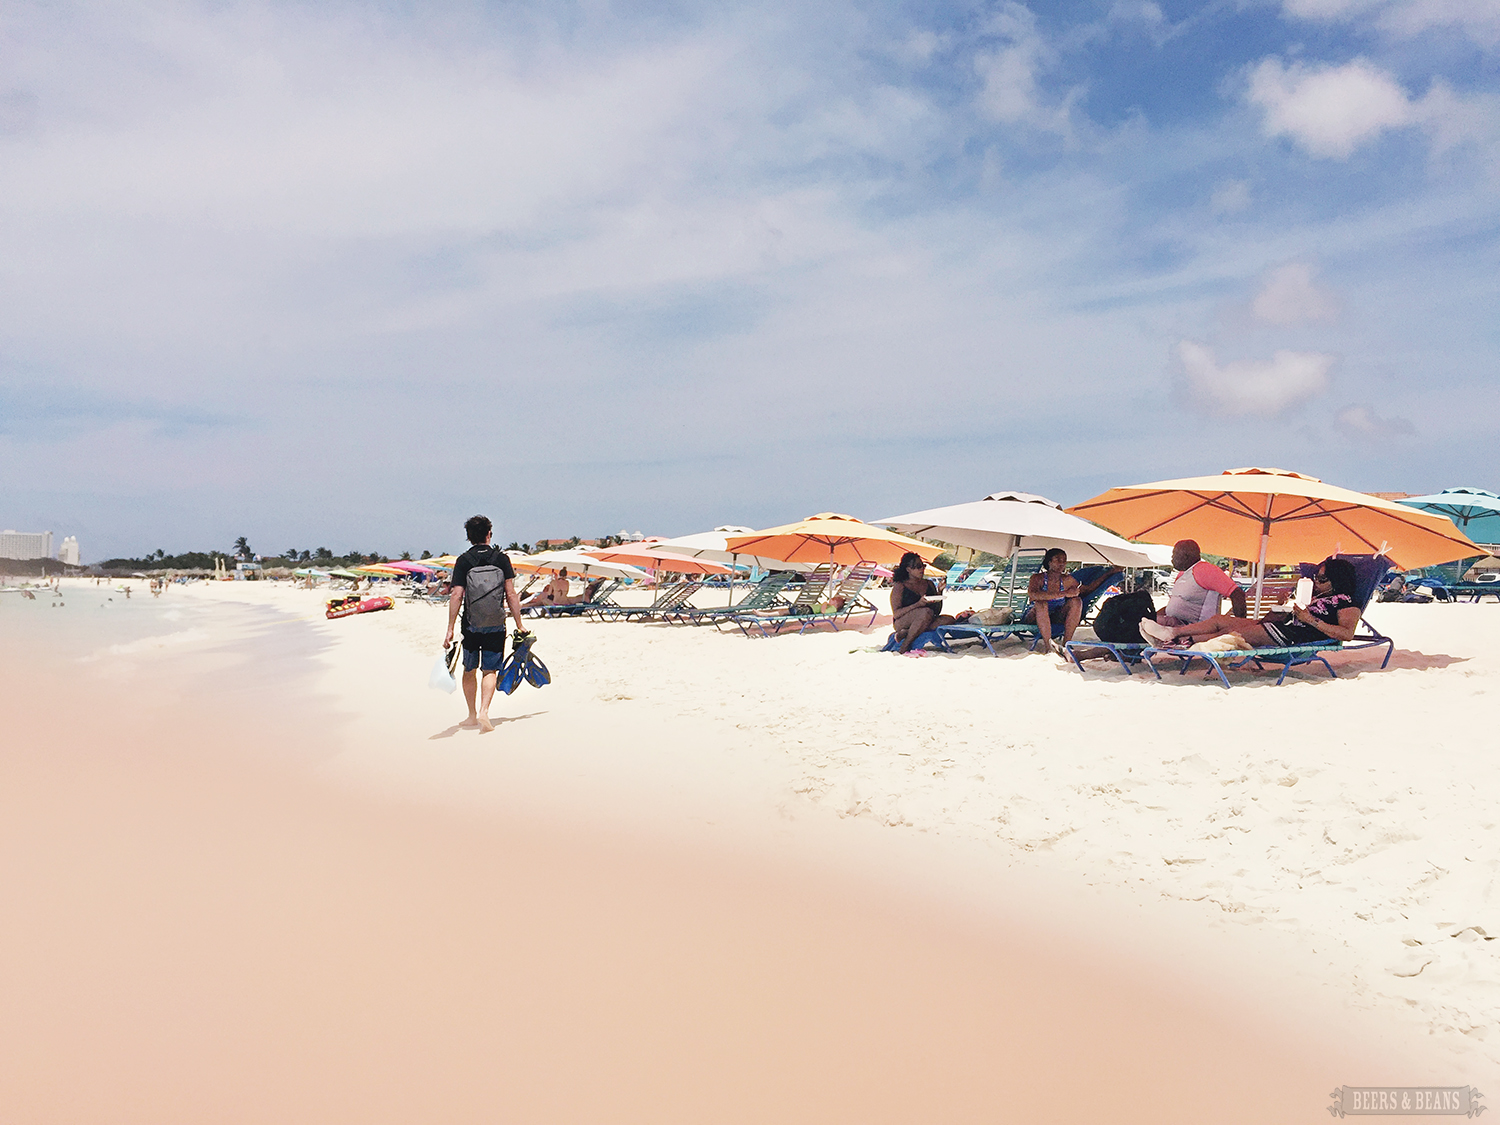 On an Aruba beach, journalist Randy Kalp walks on powder sand past beachgoers under colorful umbrellas.